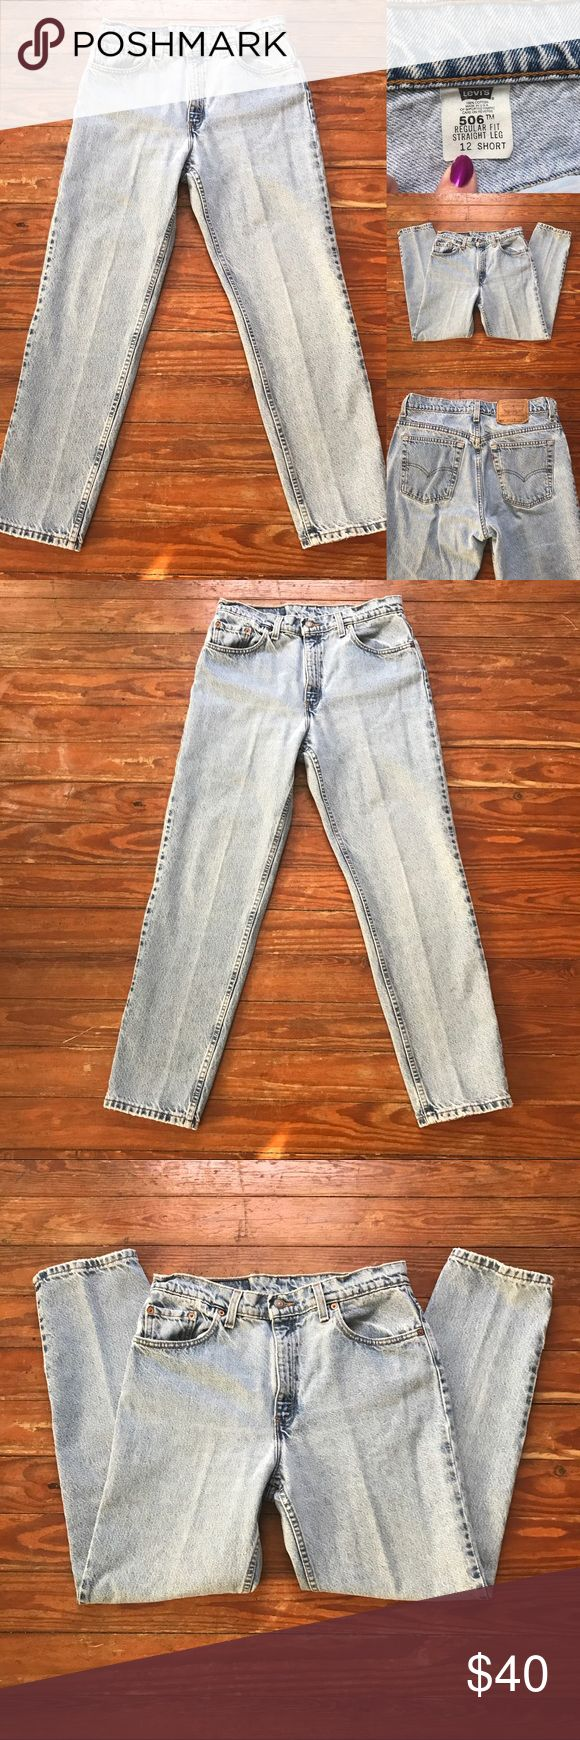 VINTAGE•Levi's•506•12•Short VINTAGE•Levi's•506•12•Short•Regular Fit•Straight Leg•Waist 15 1/4 inches•Hips 20 1/2 inches•Rise 11 1/2 inches•Inseam 29 1/4 inches•these measurements are done to the best of my ability and may vary slightly•NO MODELING/TRADING• Levi's Jeans Straight Leg